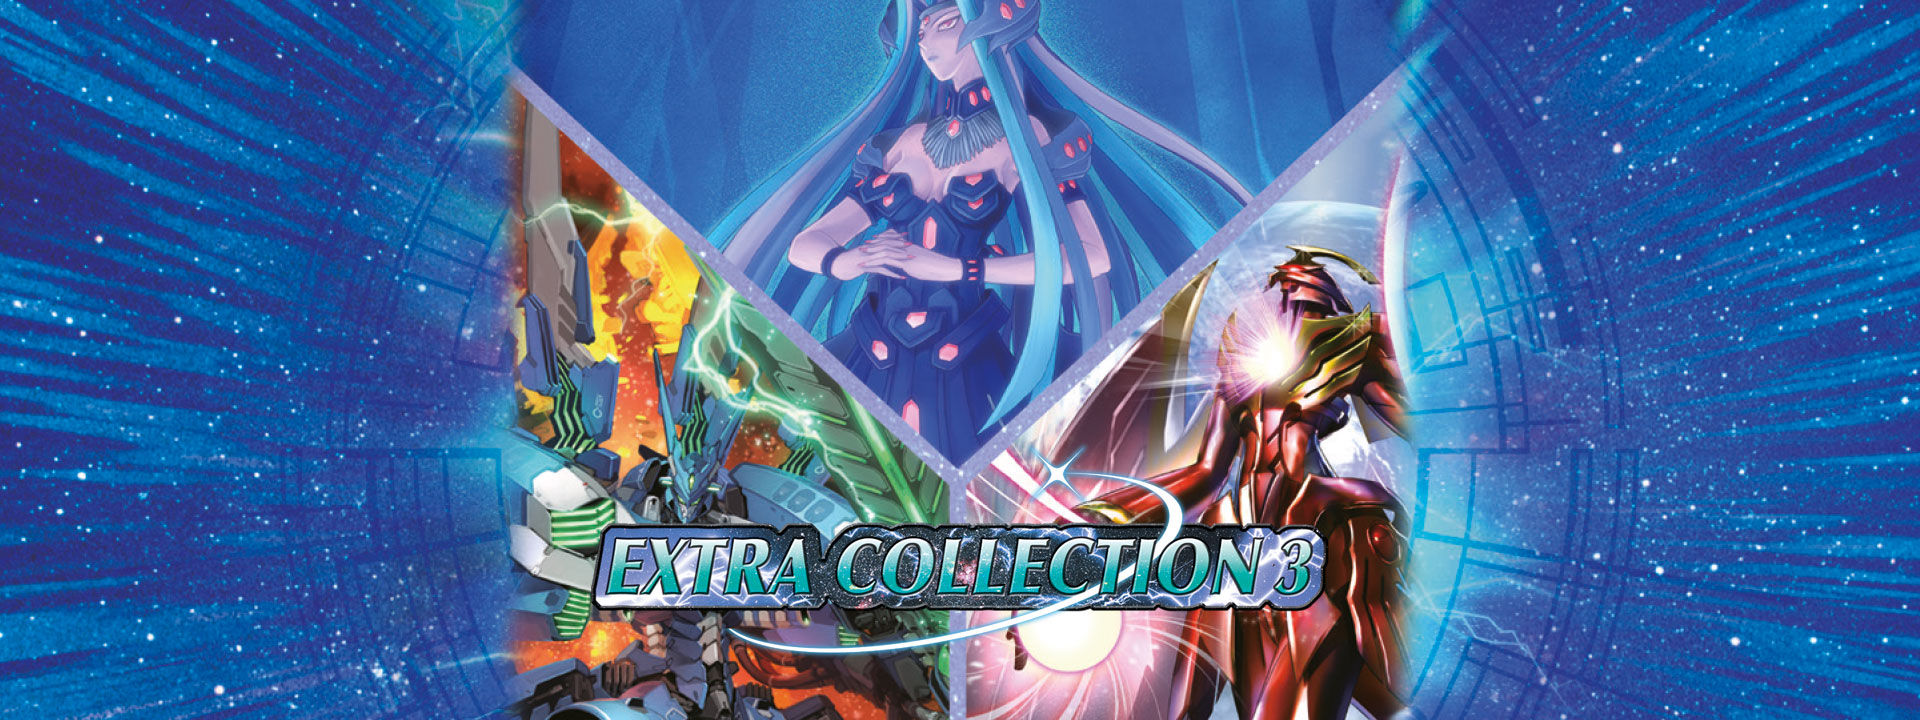 EC03: Extra Collection 3